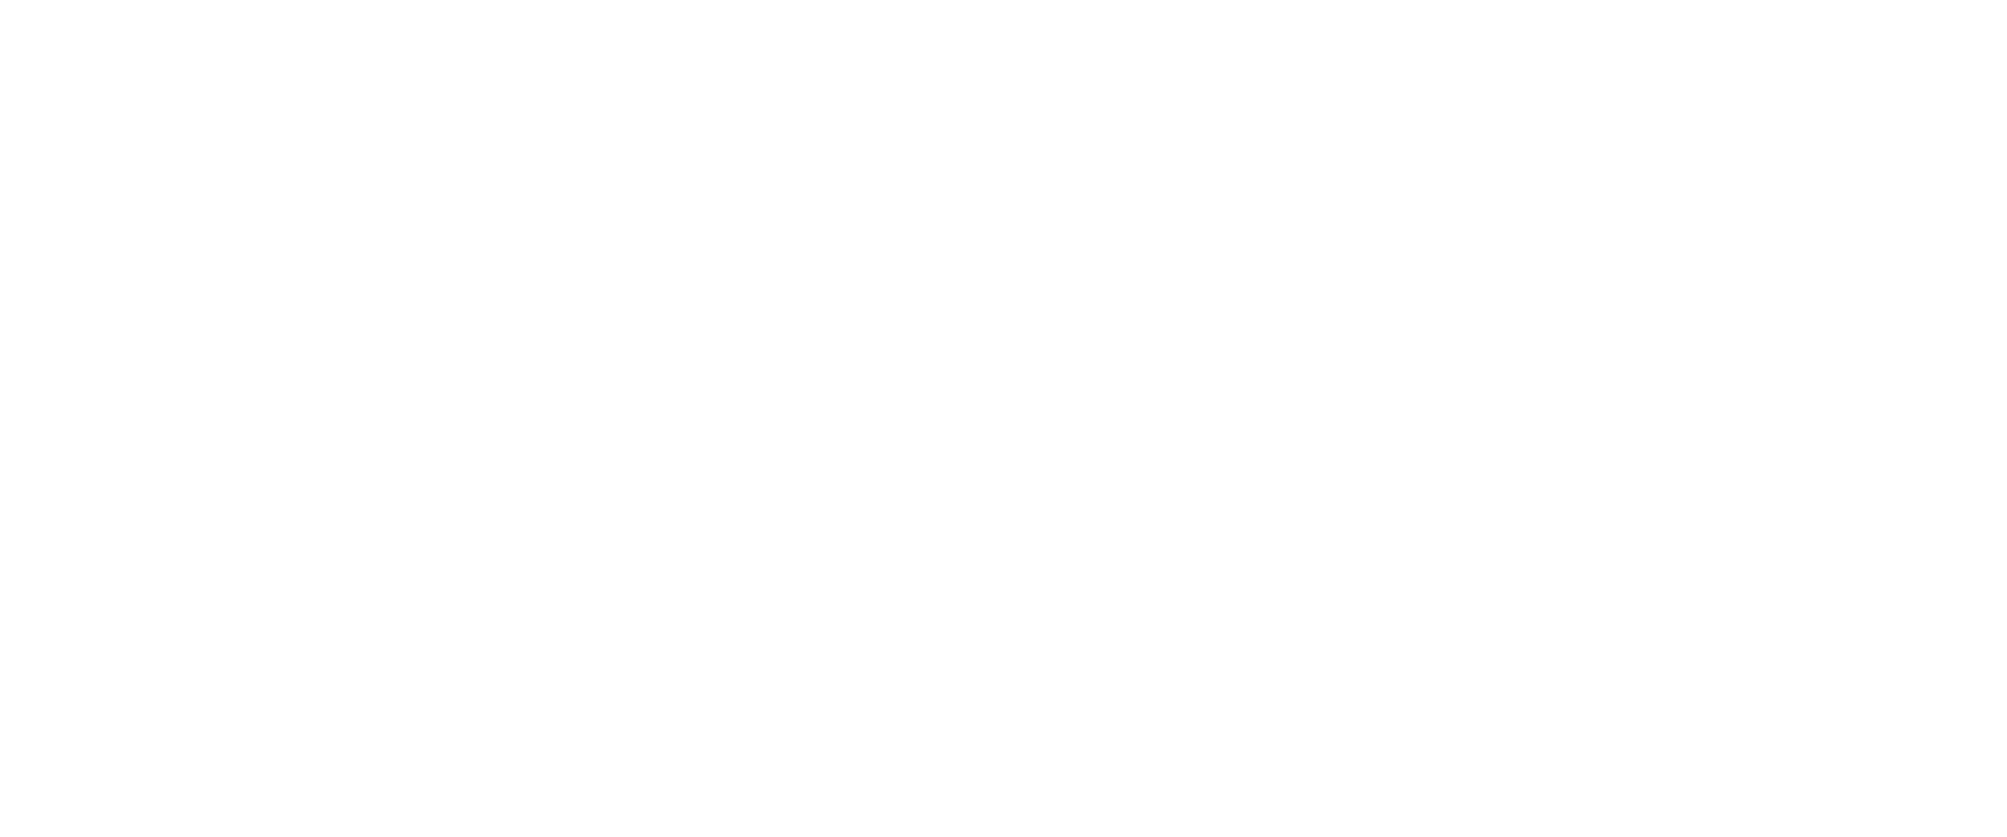 Digital + Technology Collective